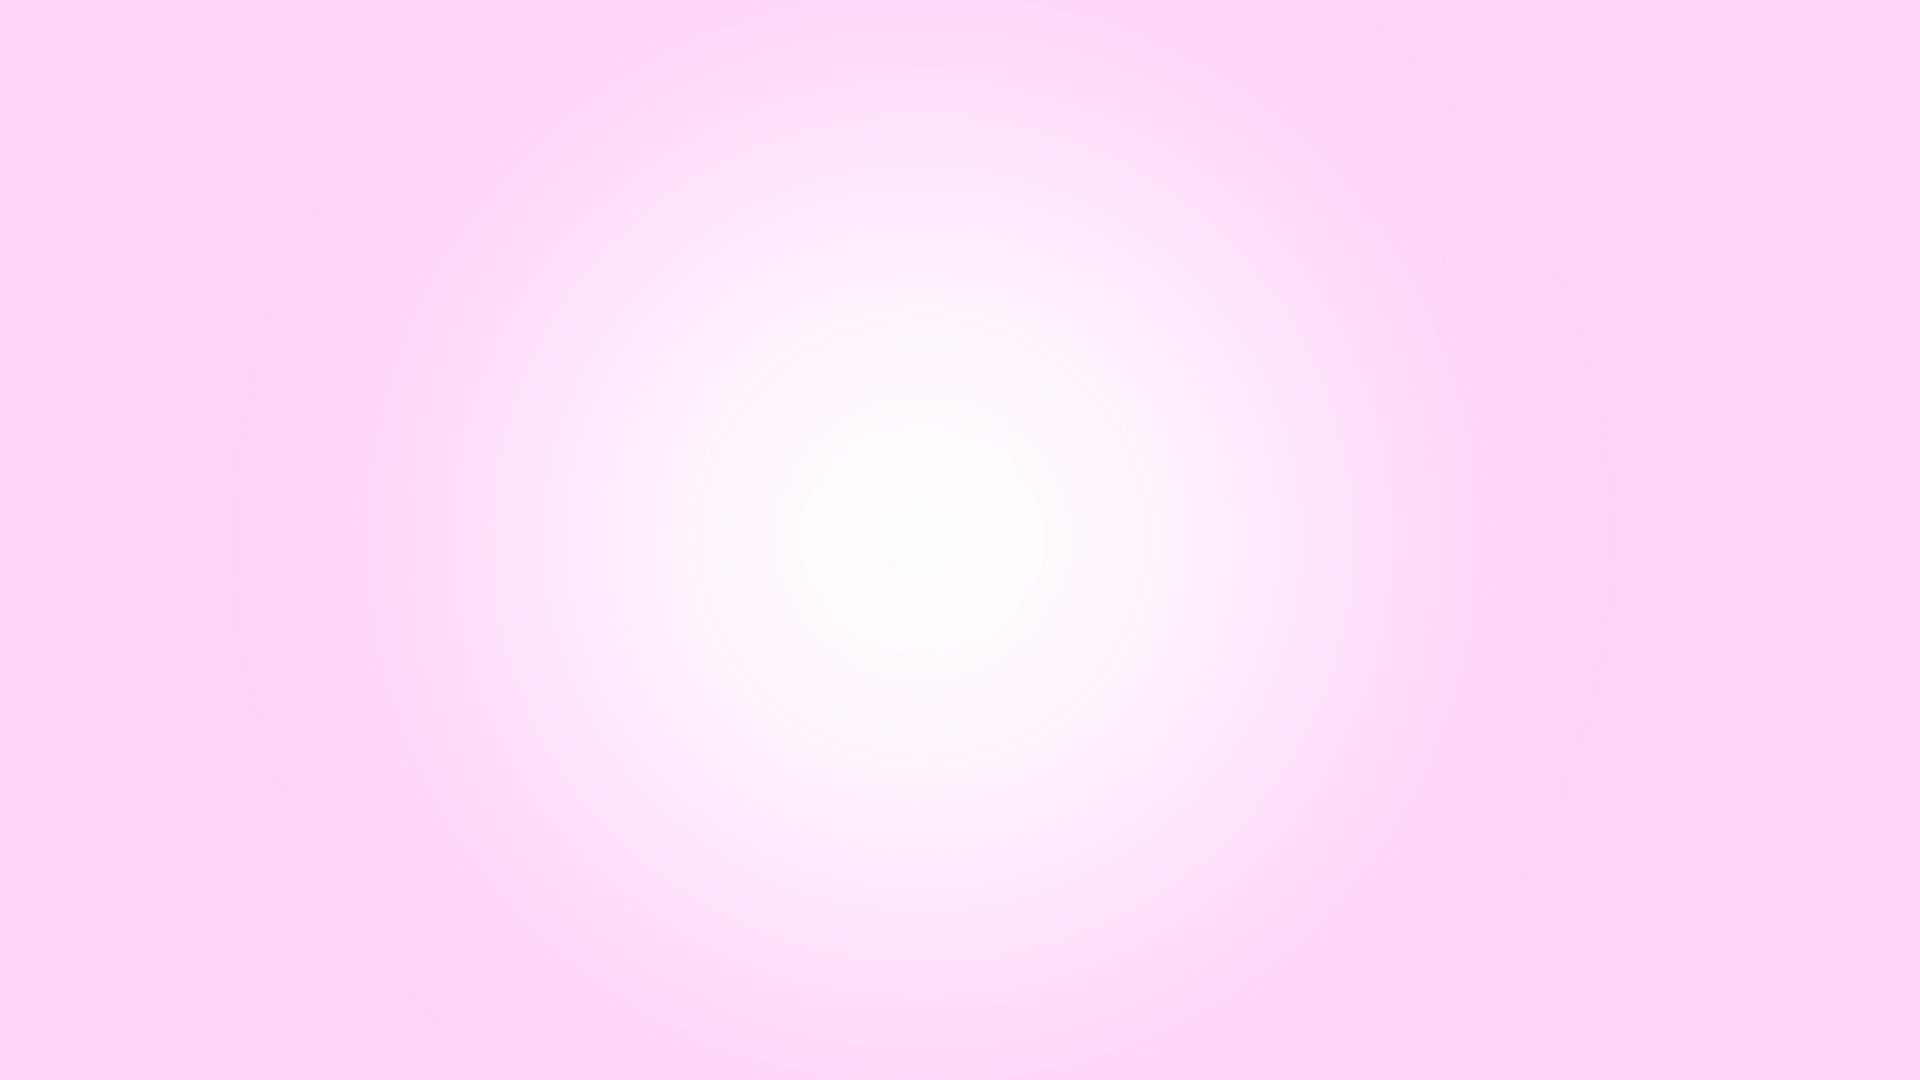 Light Pink Wallpaper